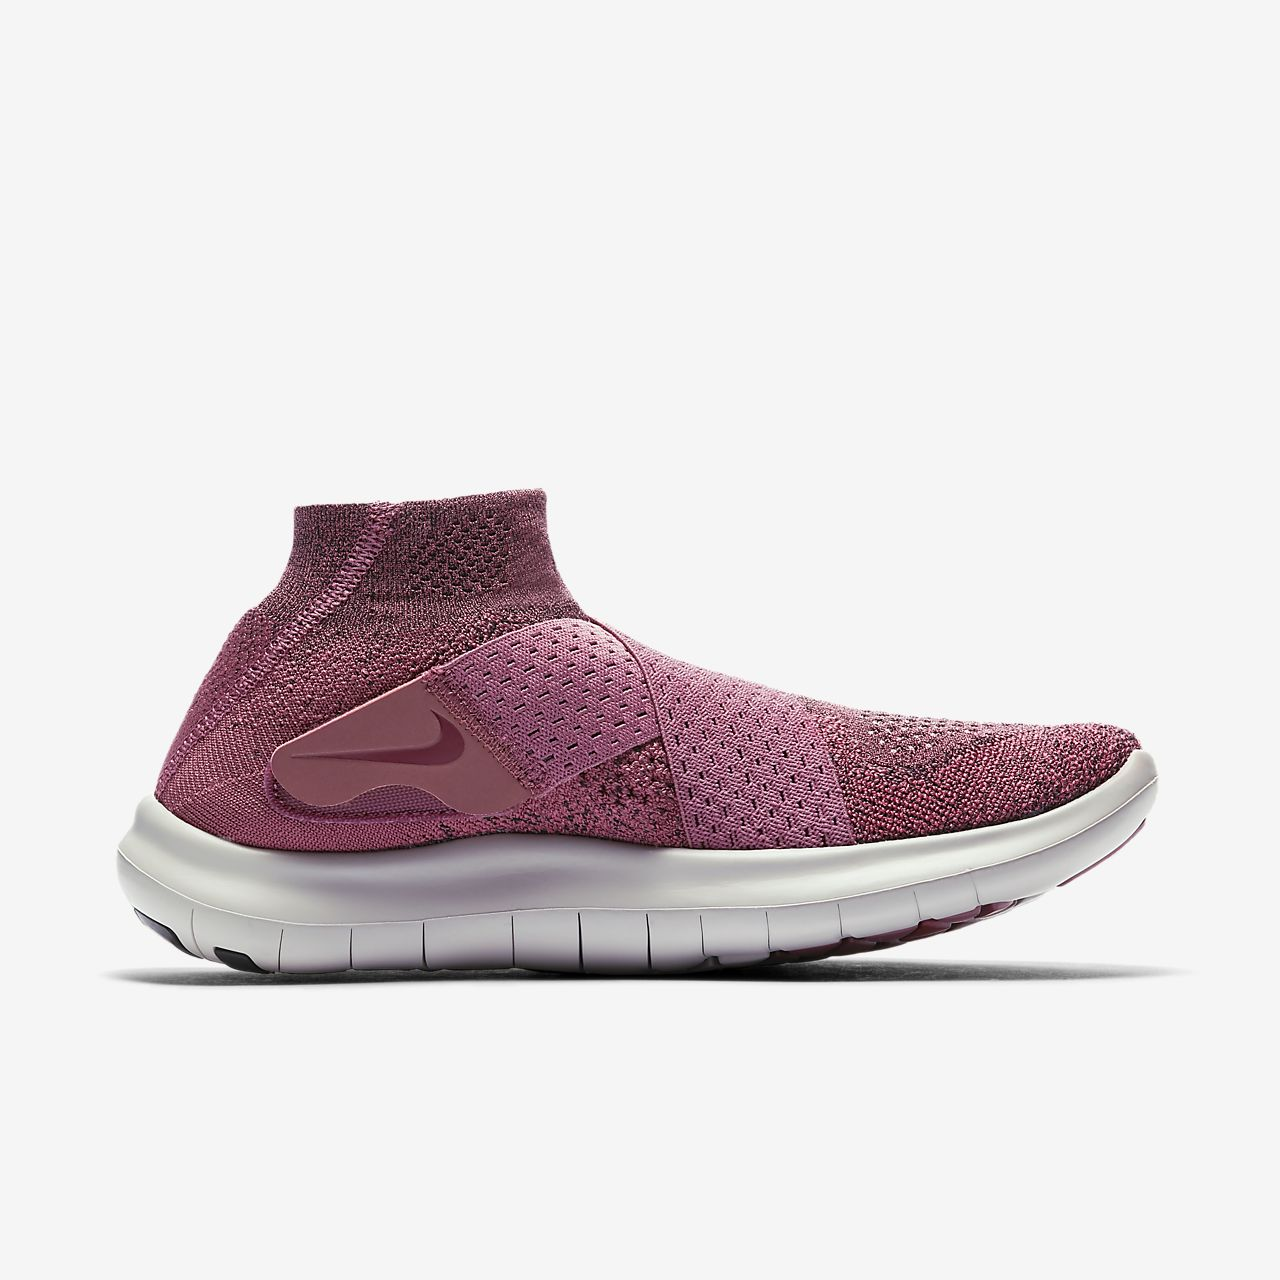 best website 5c62c e52a3 Nike Free RN Motion Flyknit 2017 Women's Running Shoe. Nike.com AU